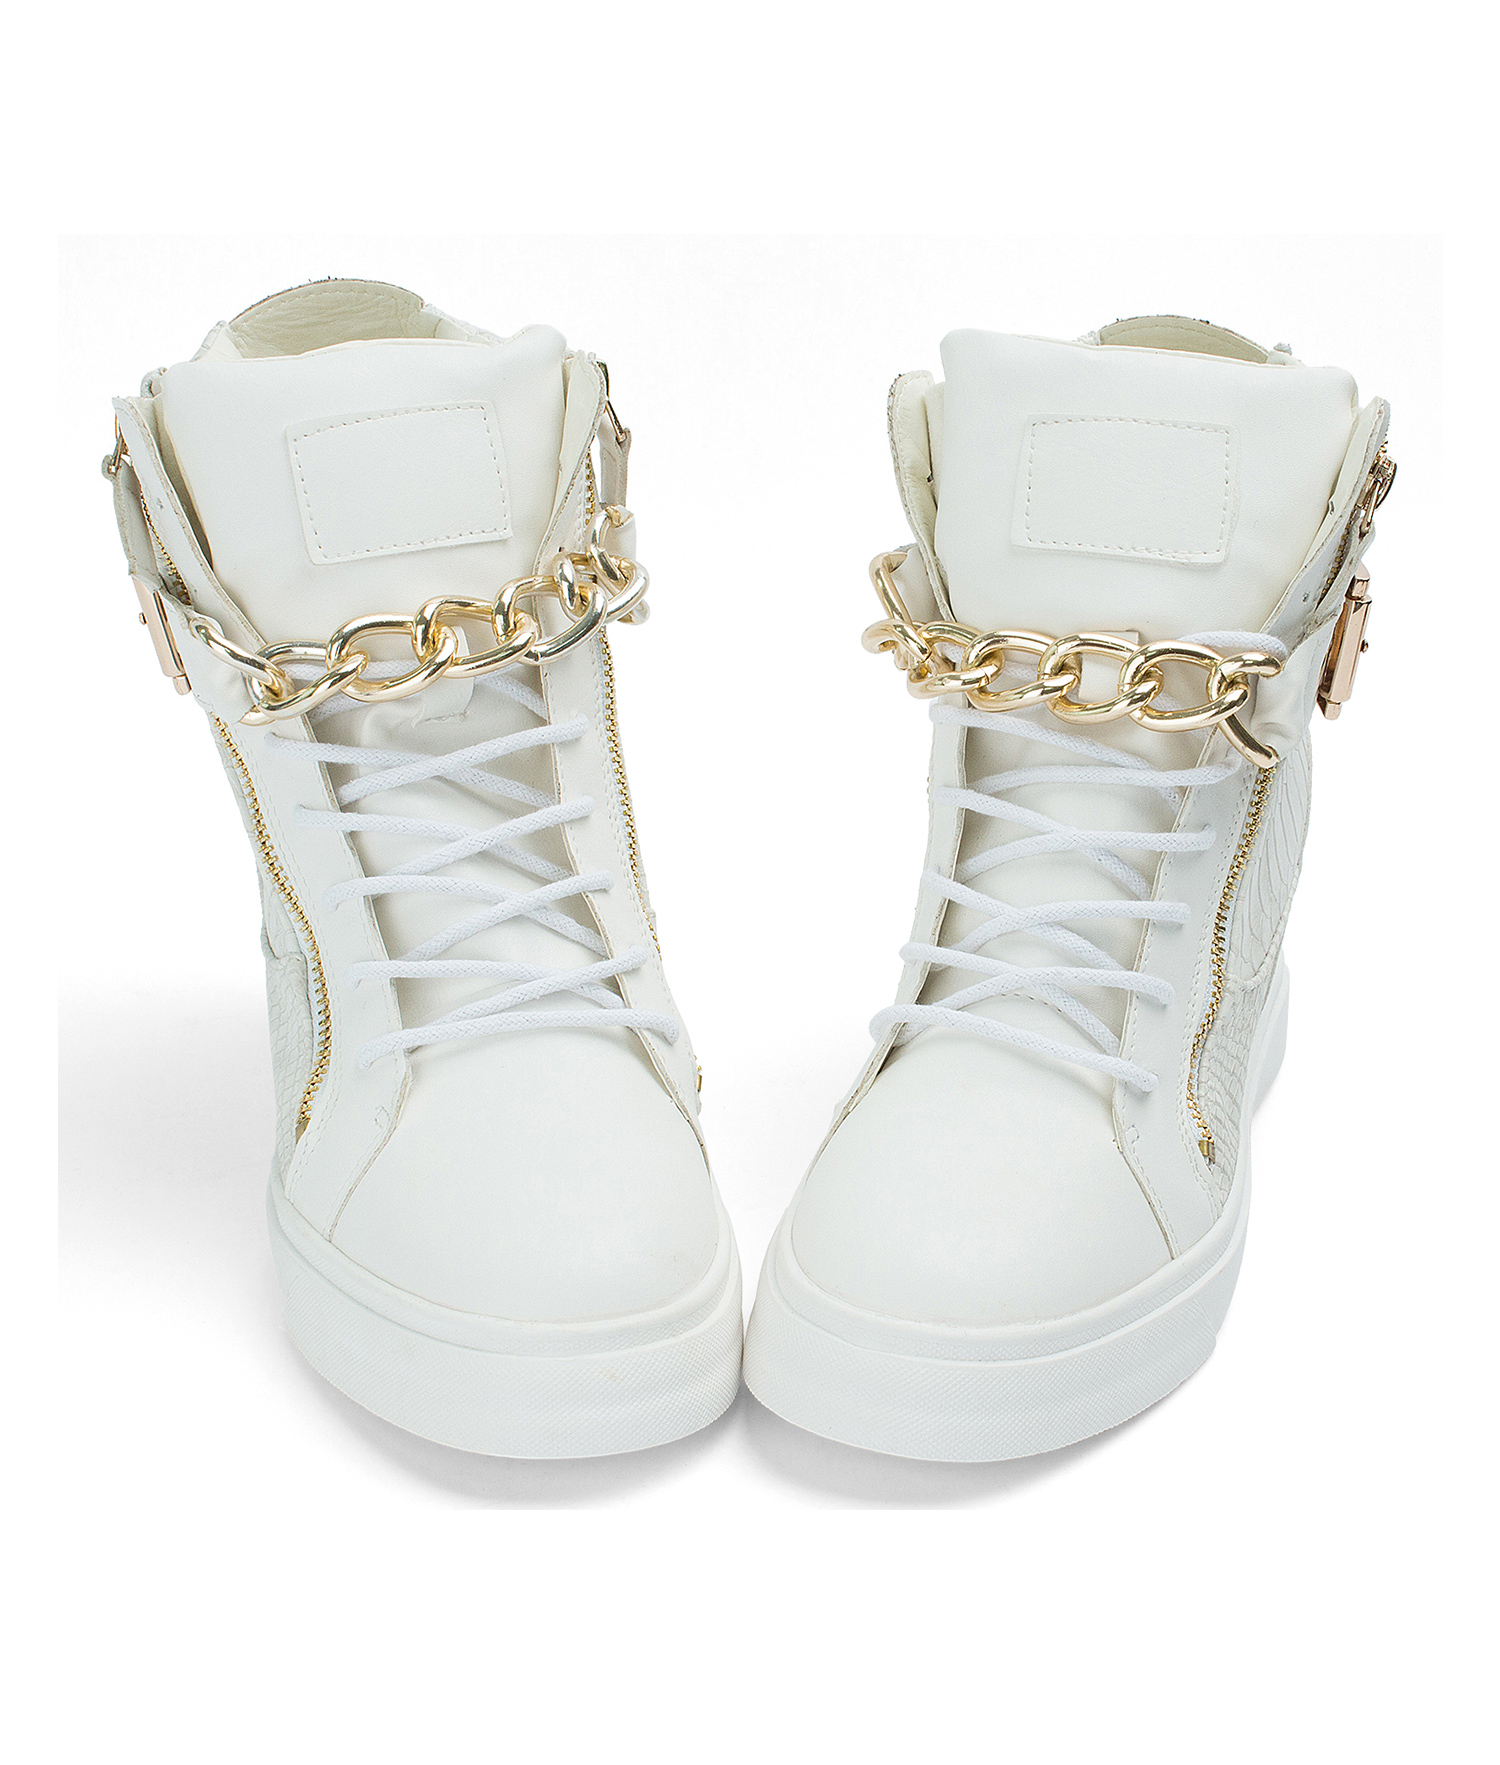 Gold Chain High Top Wedge Sneakers Annakastleshoes Com